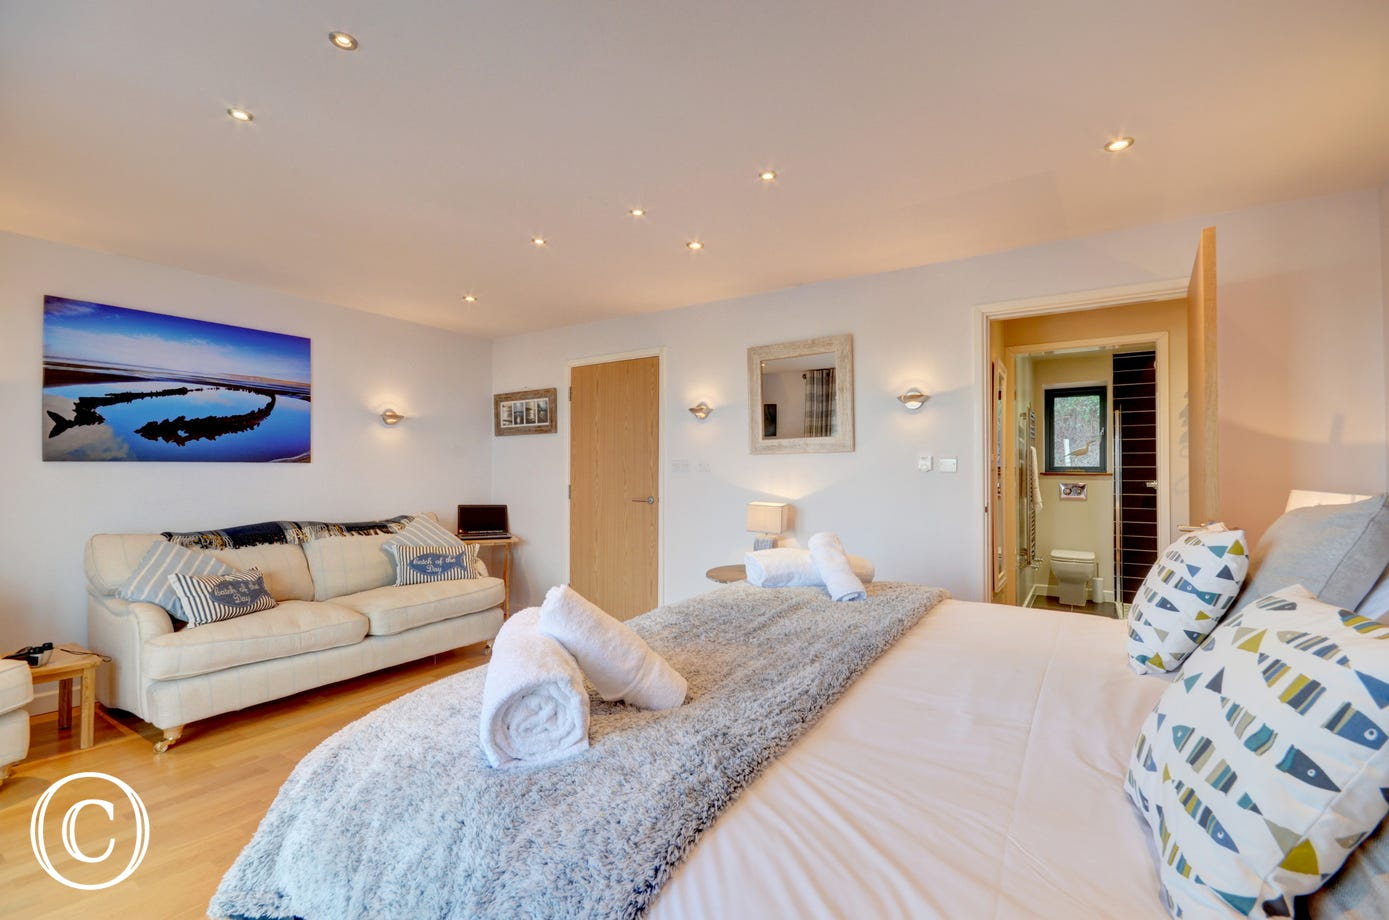 Master bedroom with dressing room, ensuite and comfortable sofas